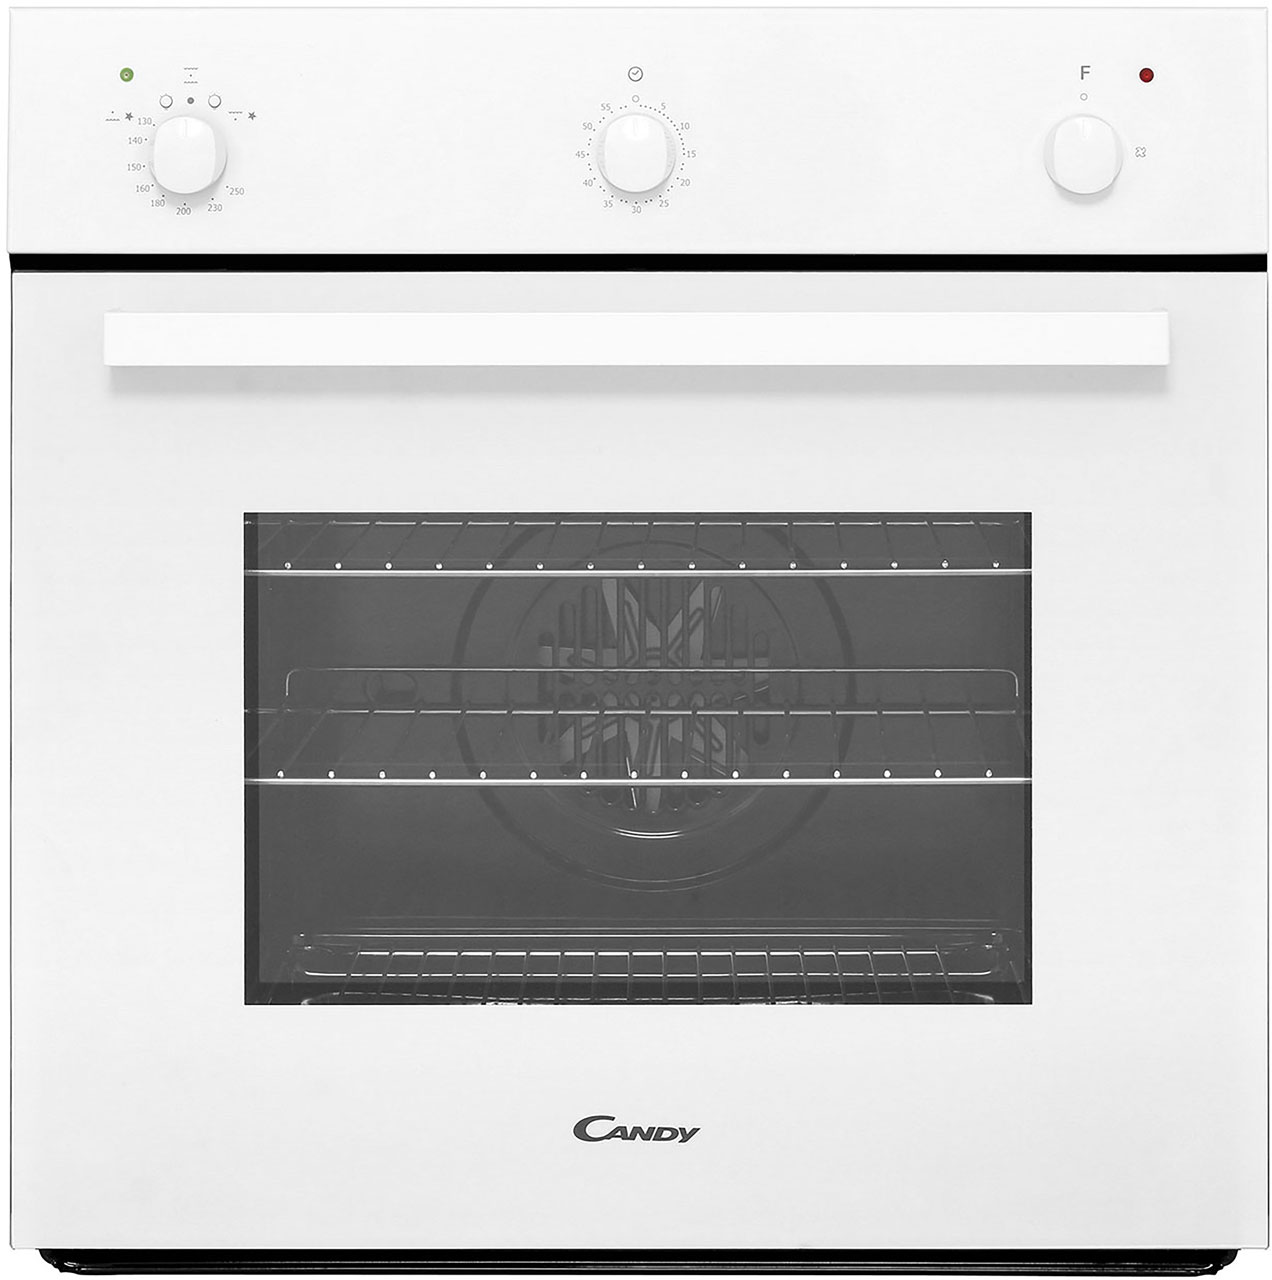 Candy Stove Diagram Electrical Wiring Magic Chef Vg505 3w Wh Built In Gas Single Oven Ao Com